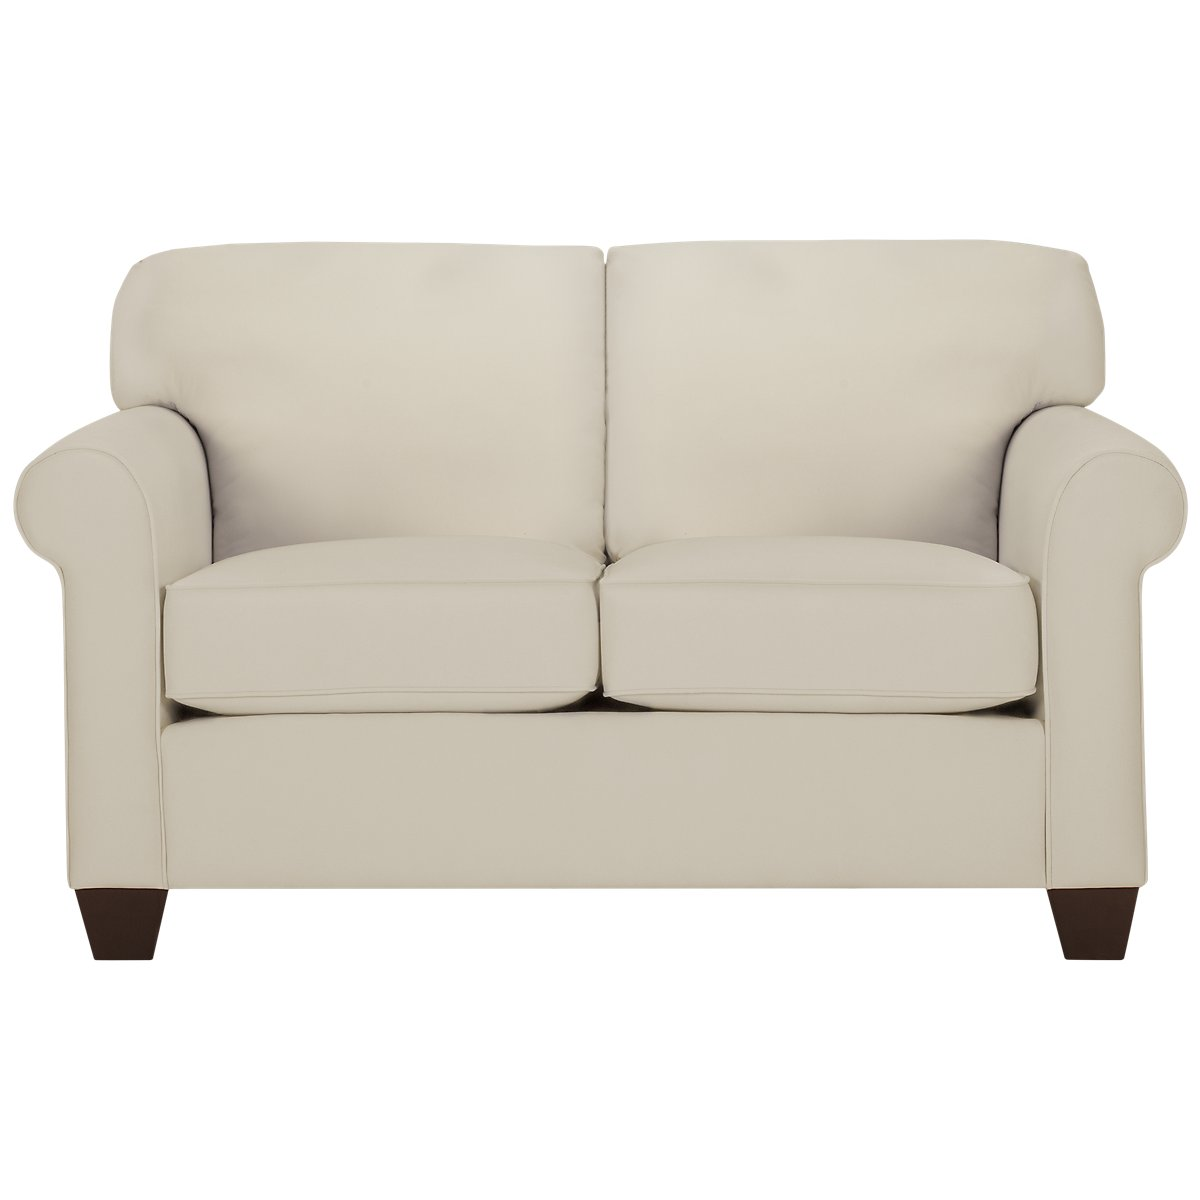 Corlis Light Beige Fabric Loveseat